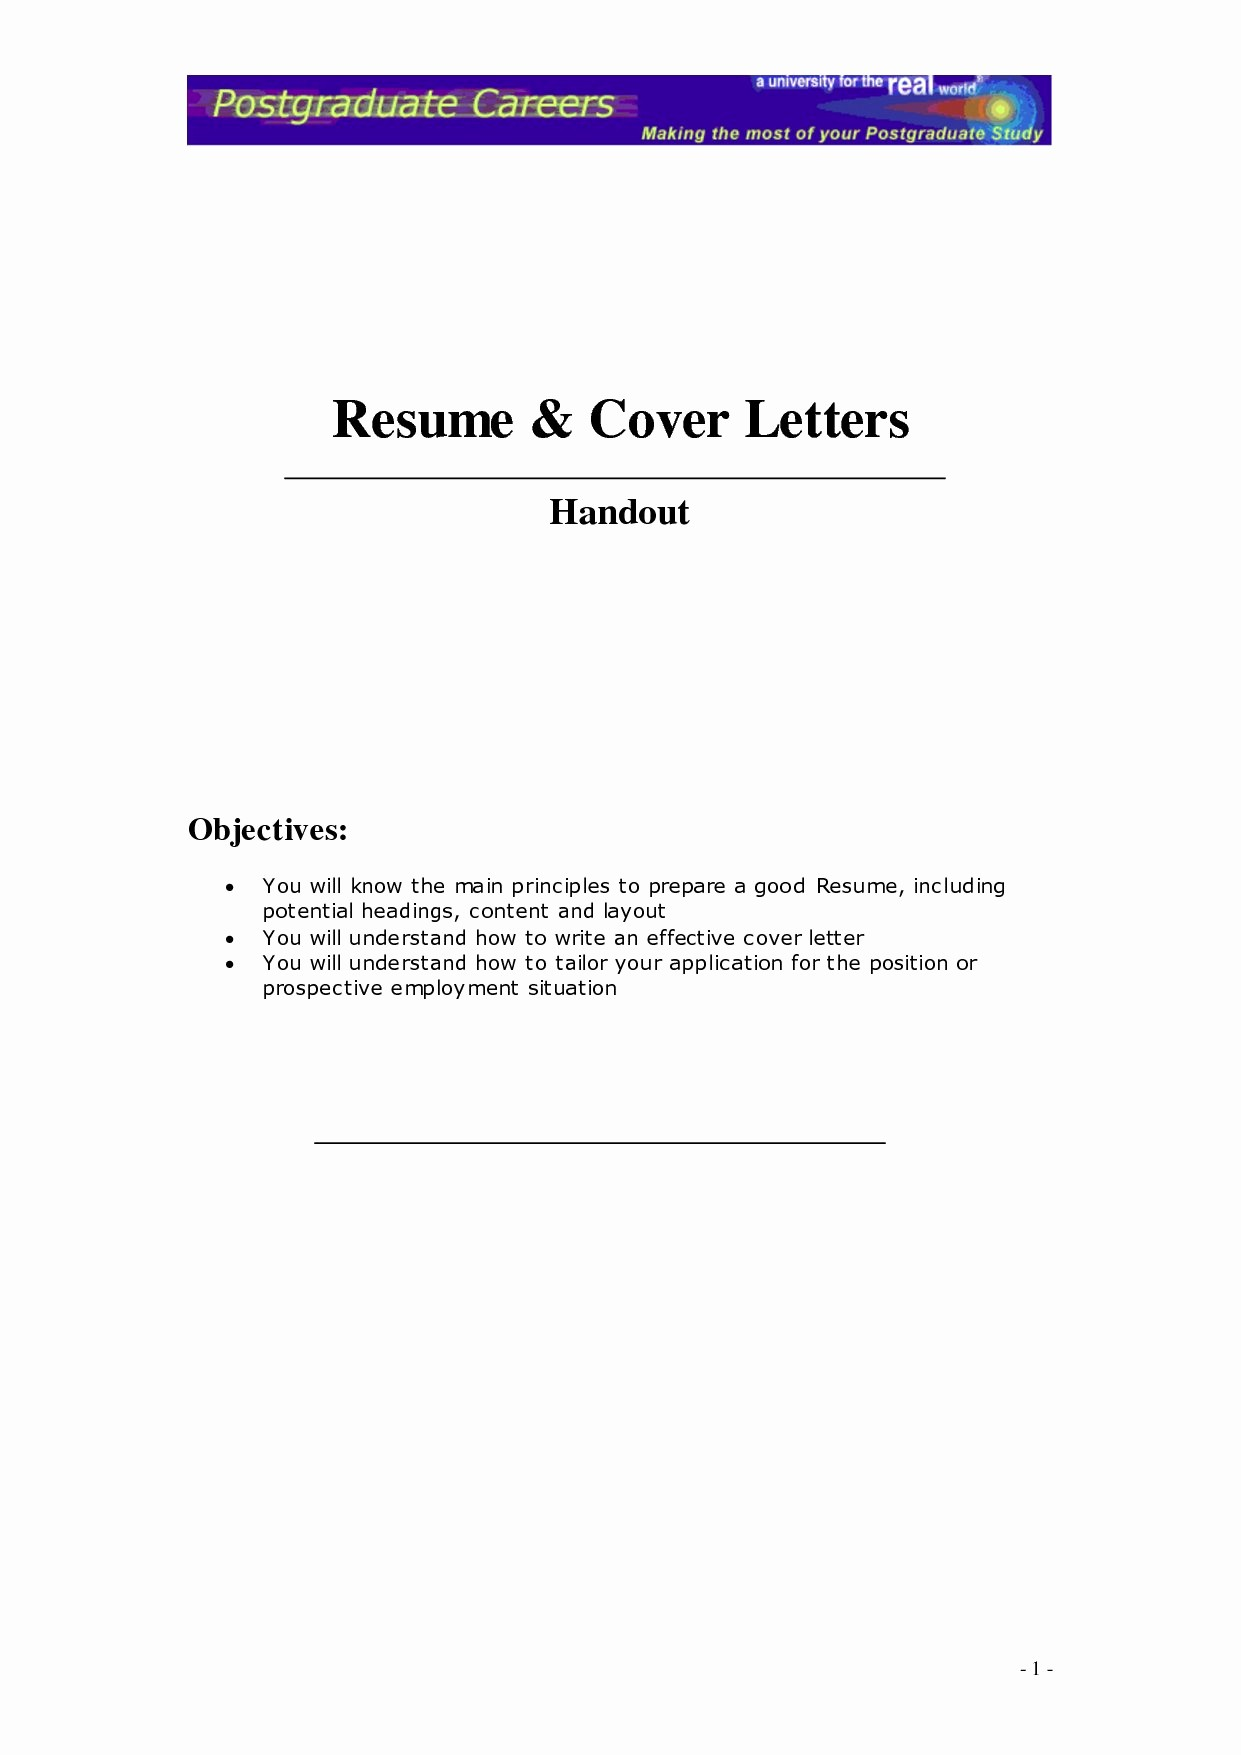 How to Cover Letter Template Lovely How to Create A Cover Letter for A Resume